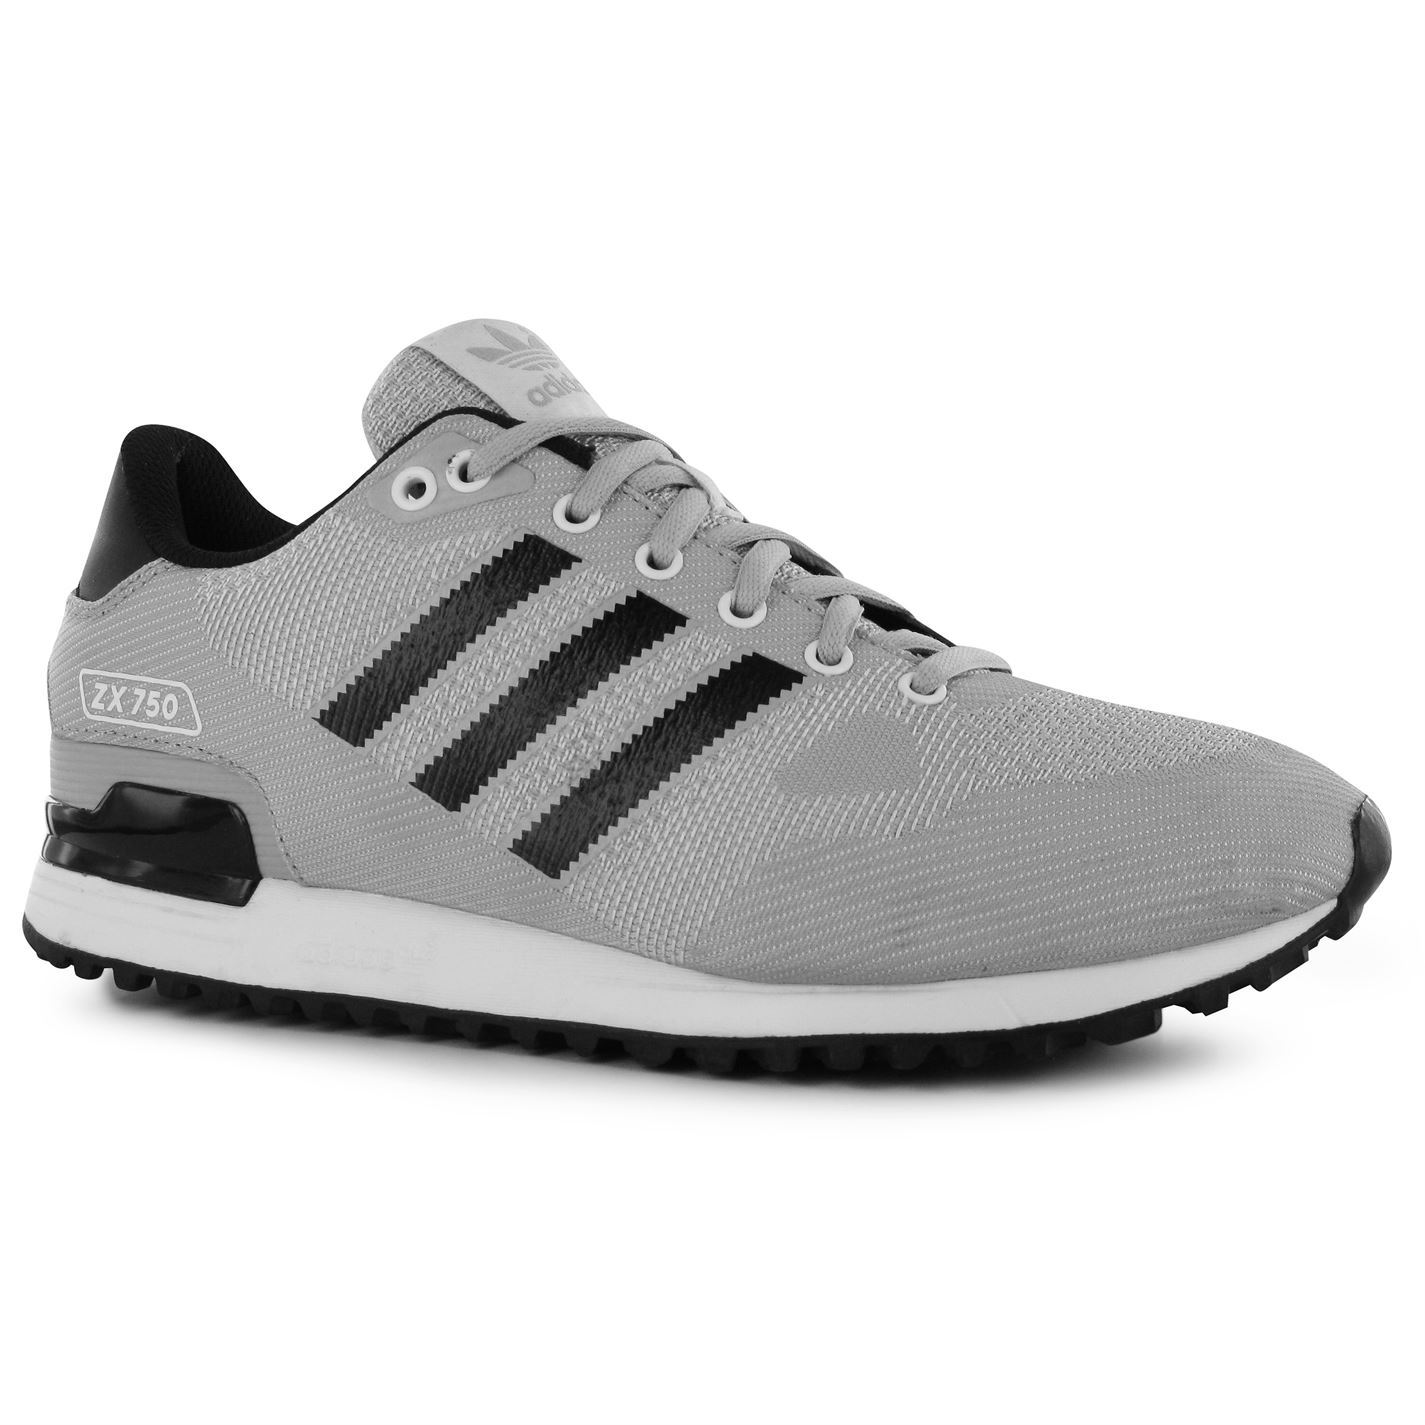 b6db775117386 ... black white shoesadidas runner whiteadidas greyfast worldwide delivery  2bea2 c4f0b  get adidas zx 750 weave sneakers mens gents runners 12b10 2c909